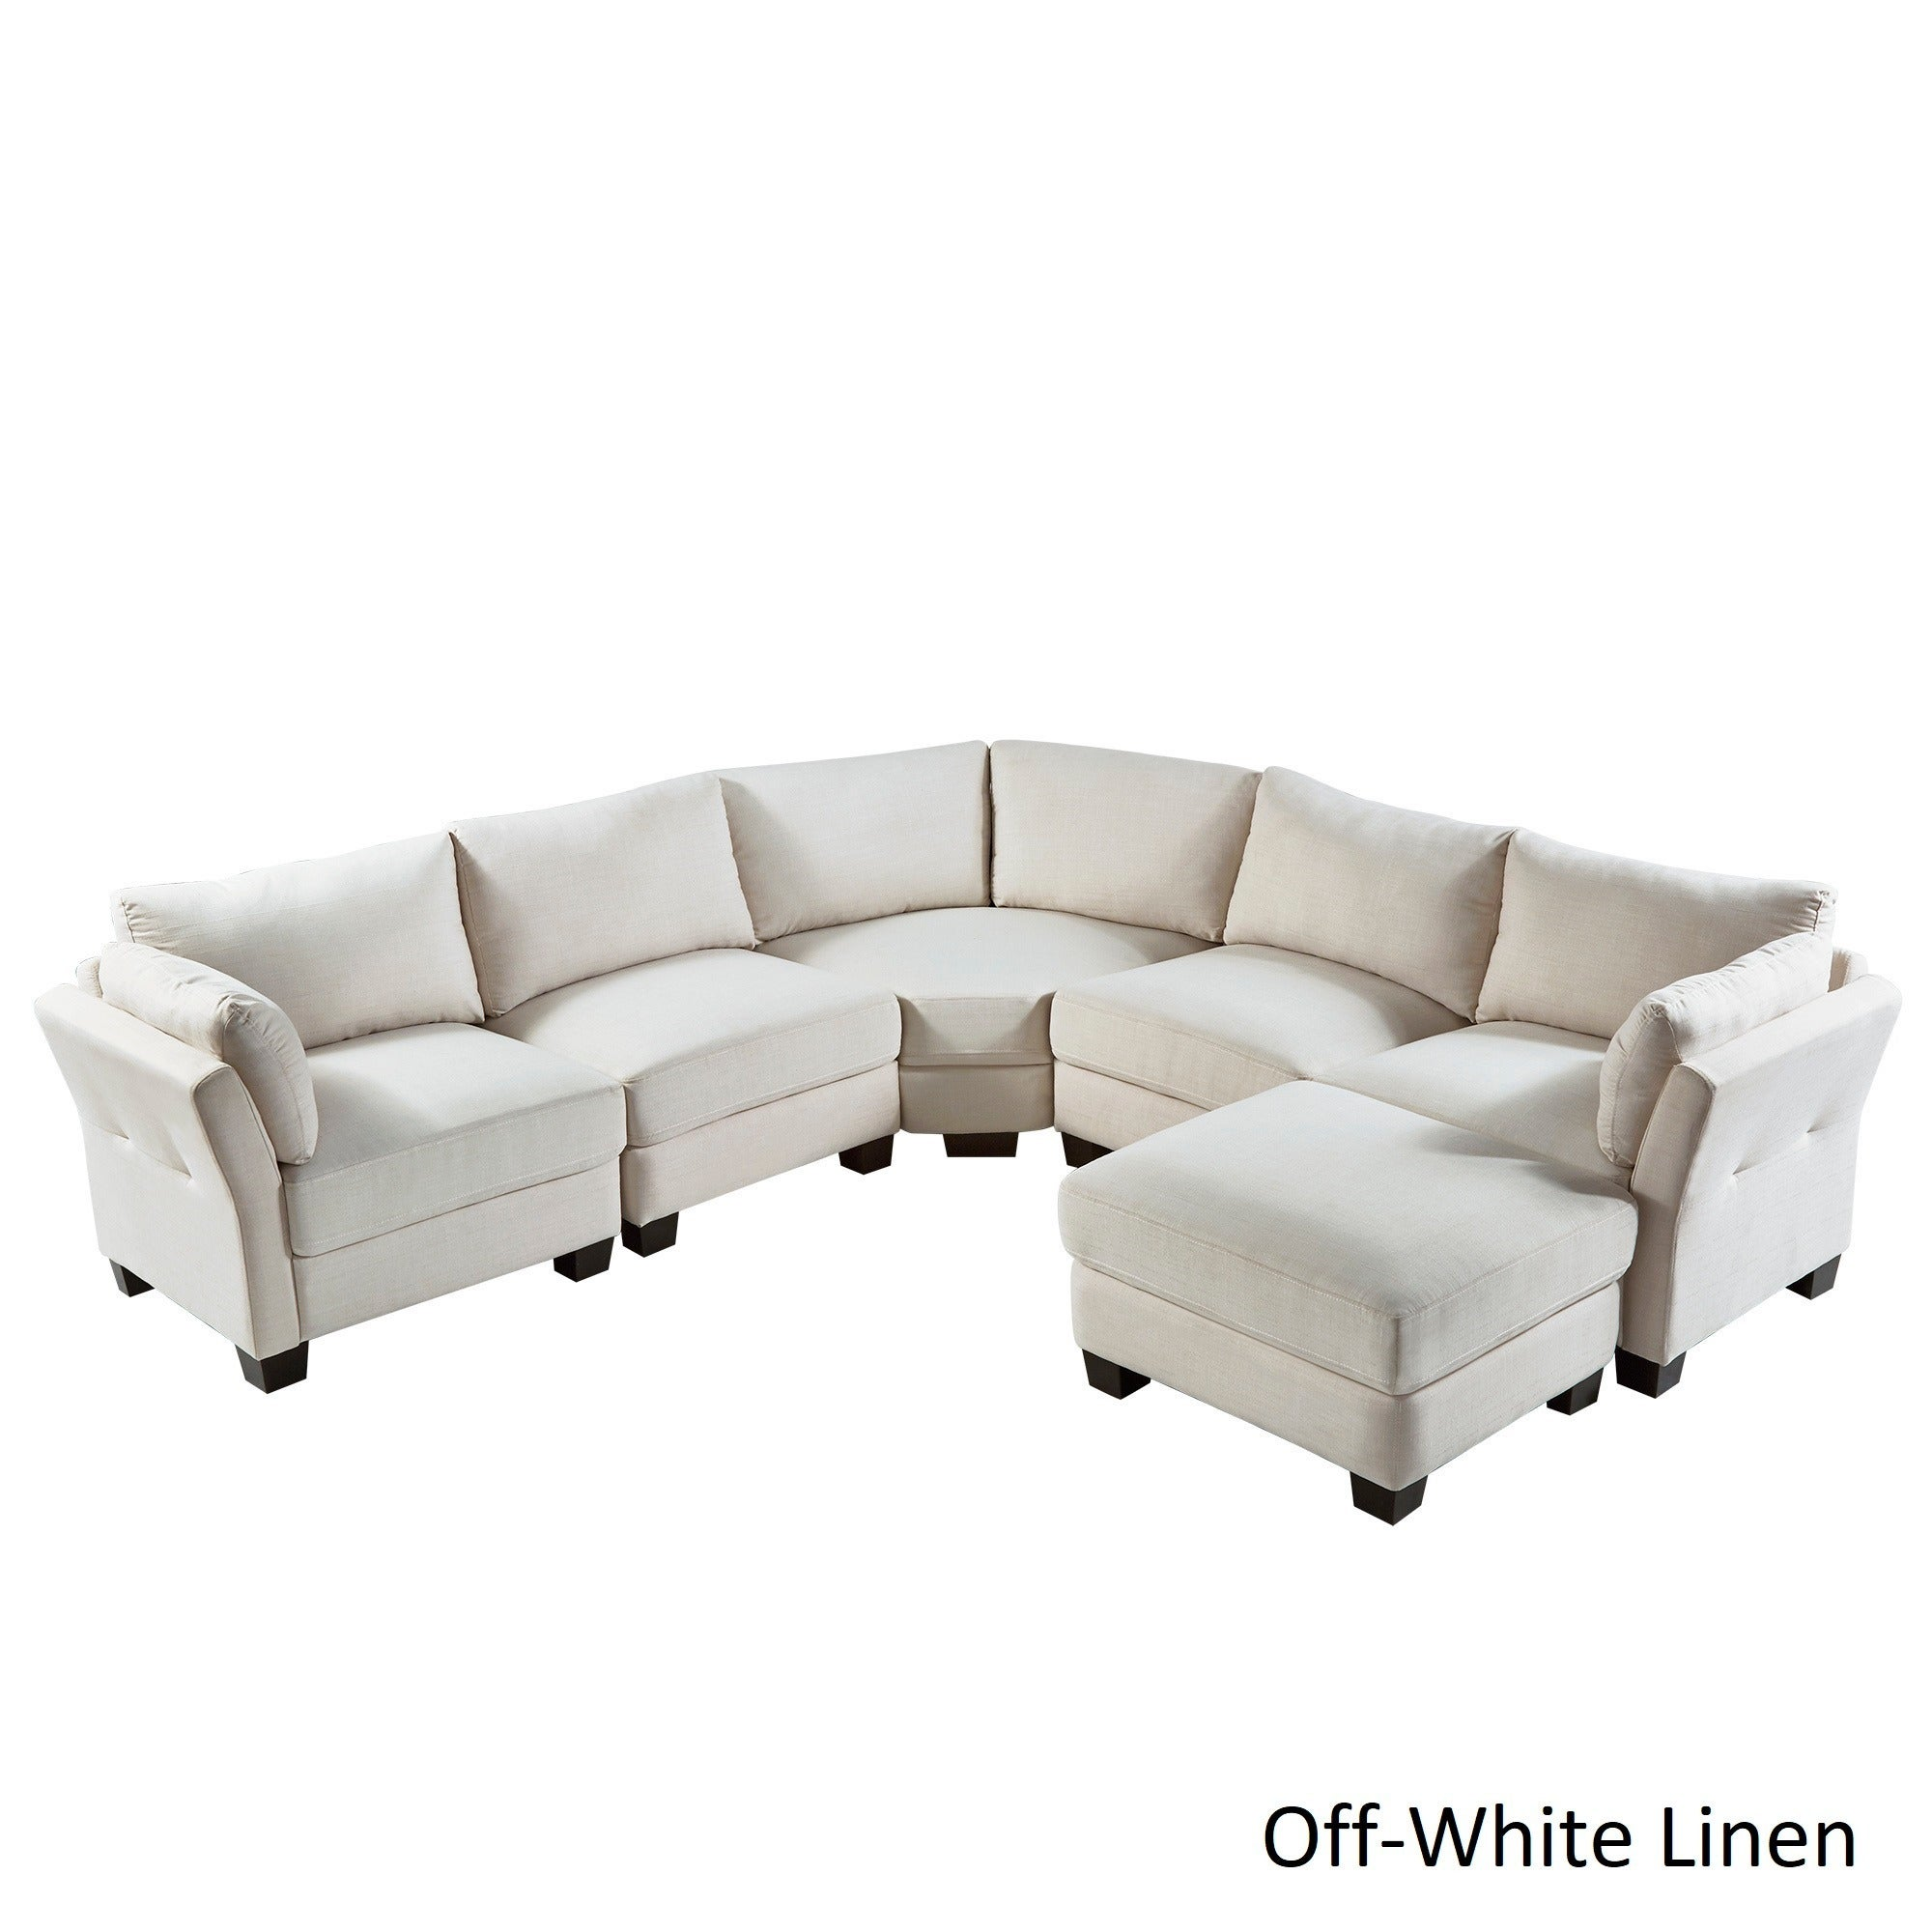 Elize U-Shaped 6-Seat Linen Fabric Modular Sectional Seating by iNSPIRE Q  Bold - Free Shipping Today - Overstock.com - 20522673